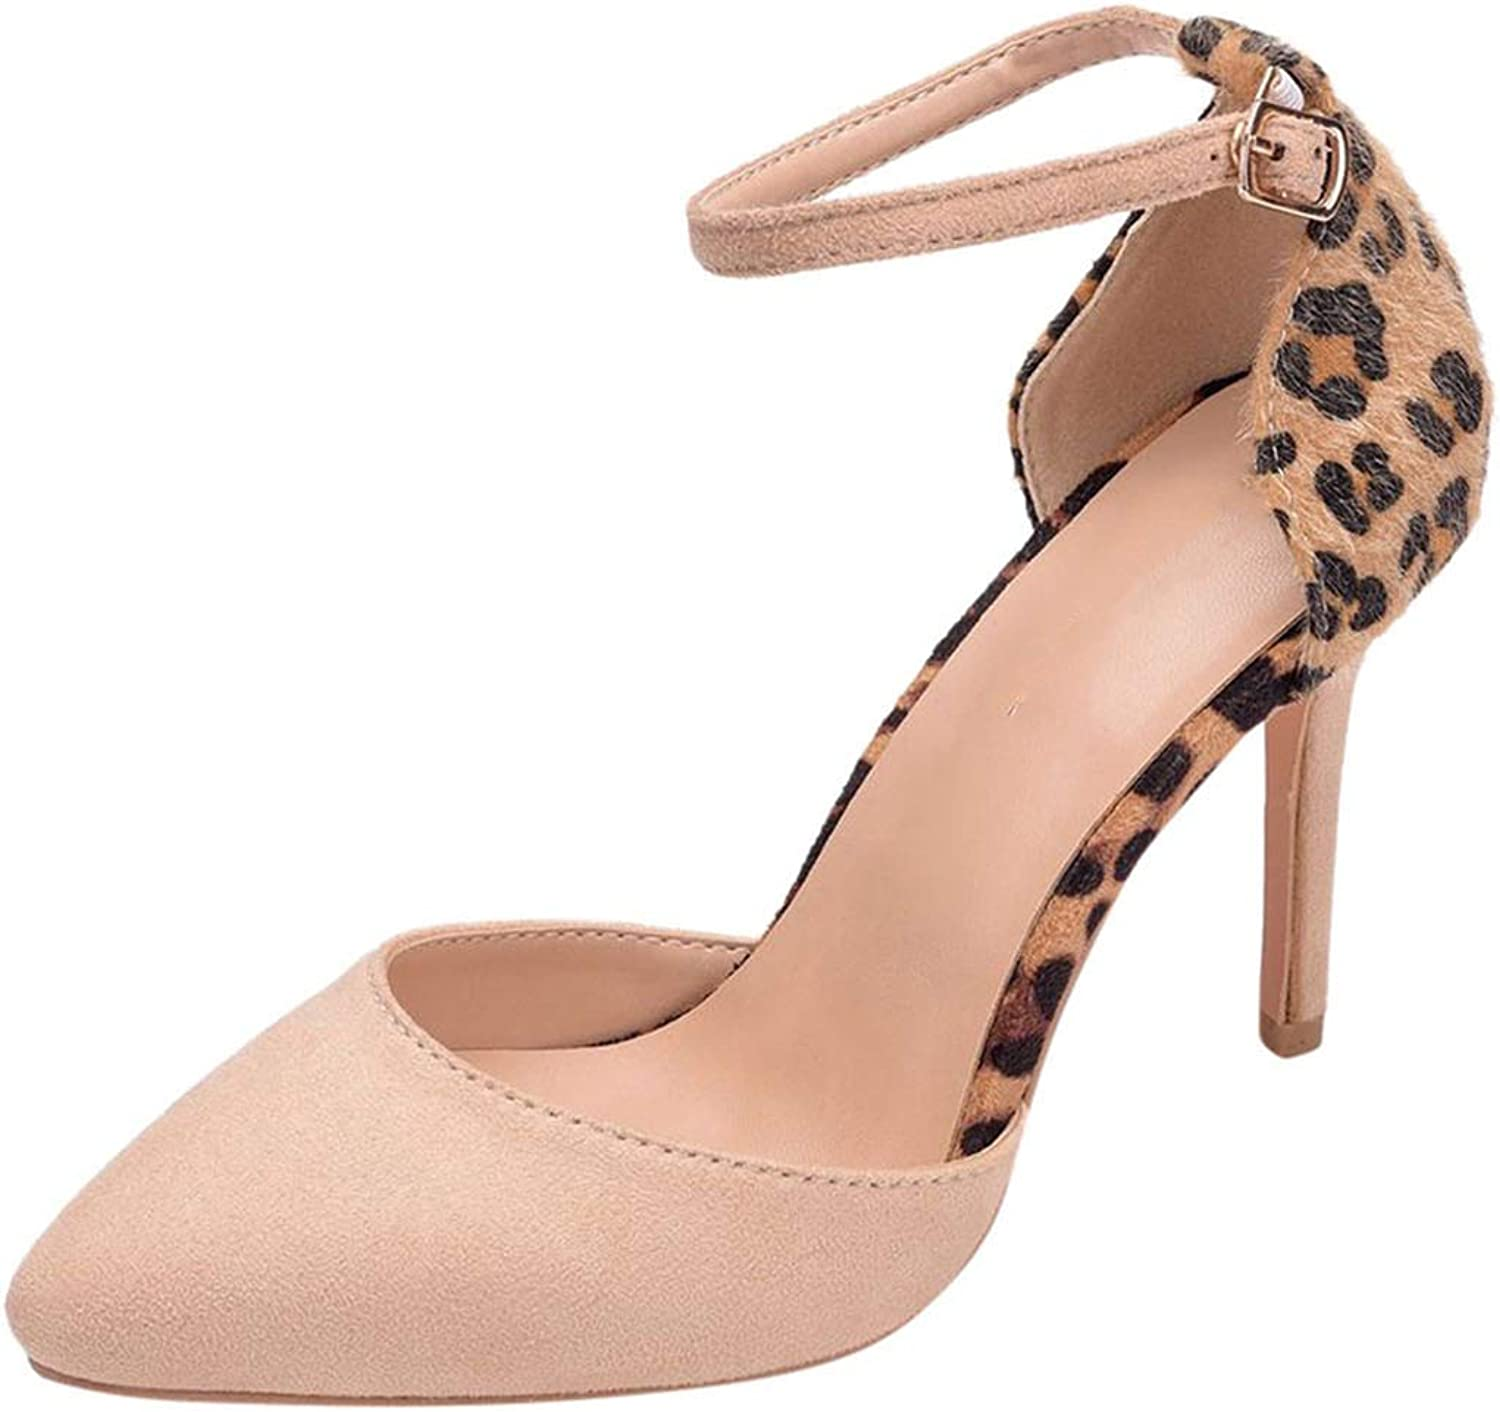 Easy-S-E-H Summer Leopard Prints High Heels shoes Point Toe Sandals